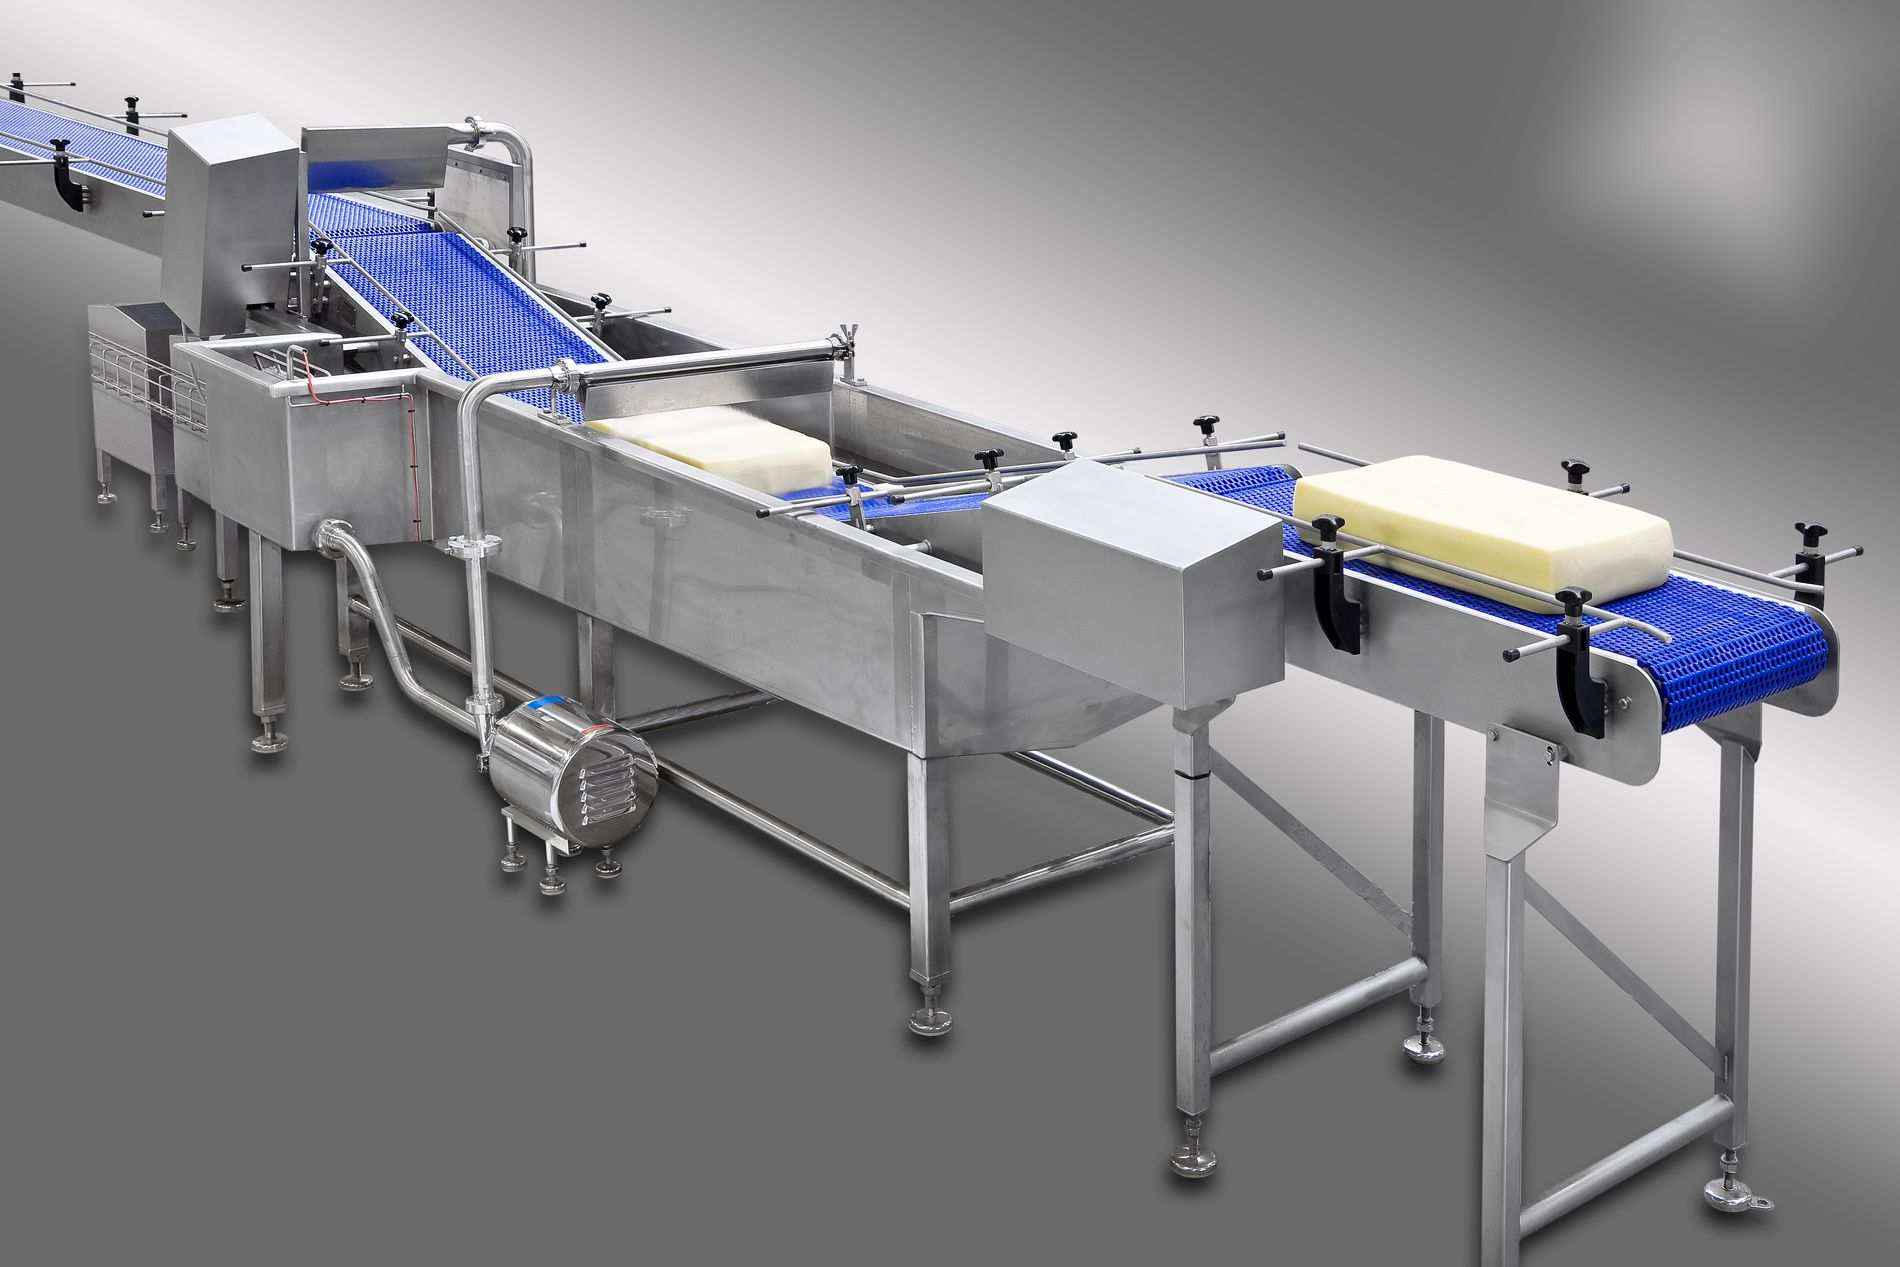 Cheese washer and dryer conveyor system